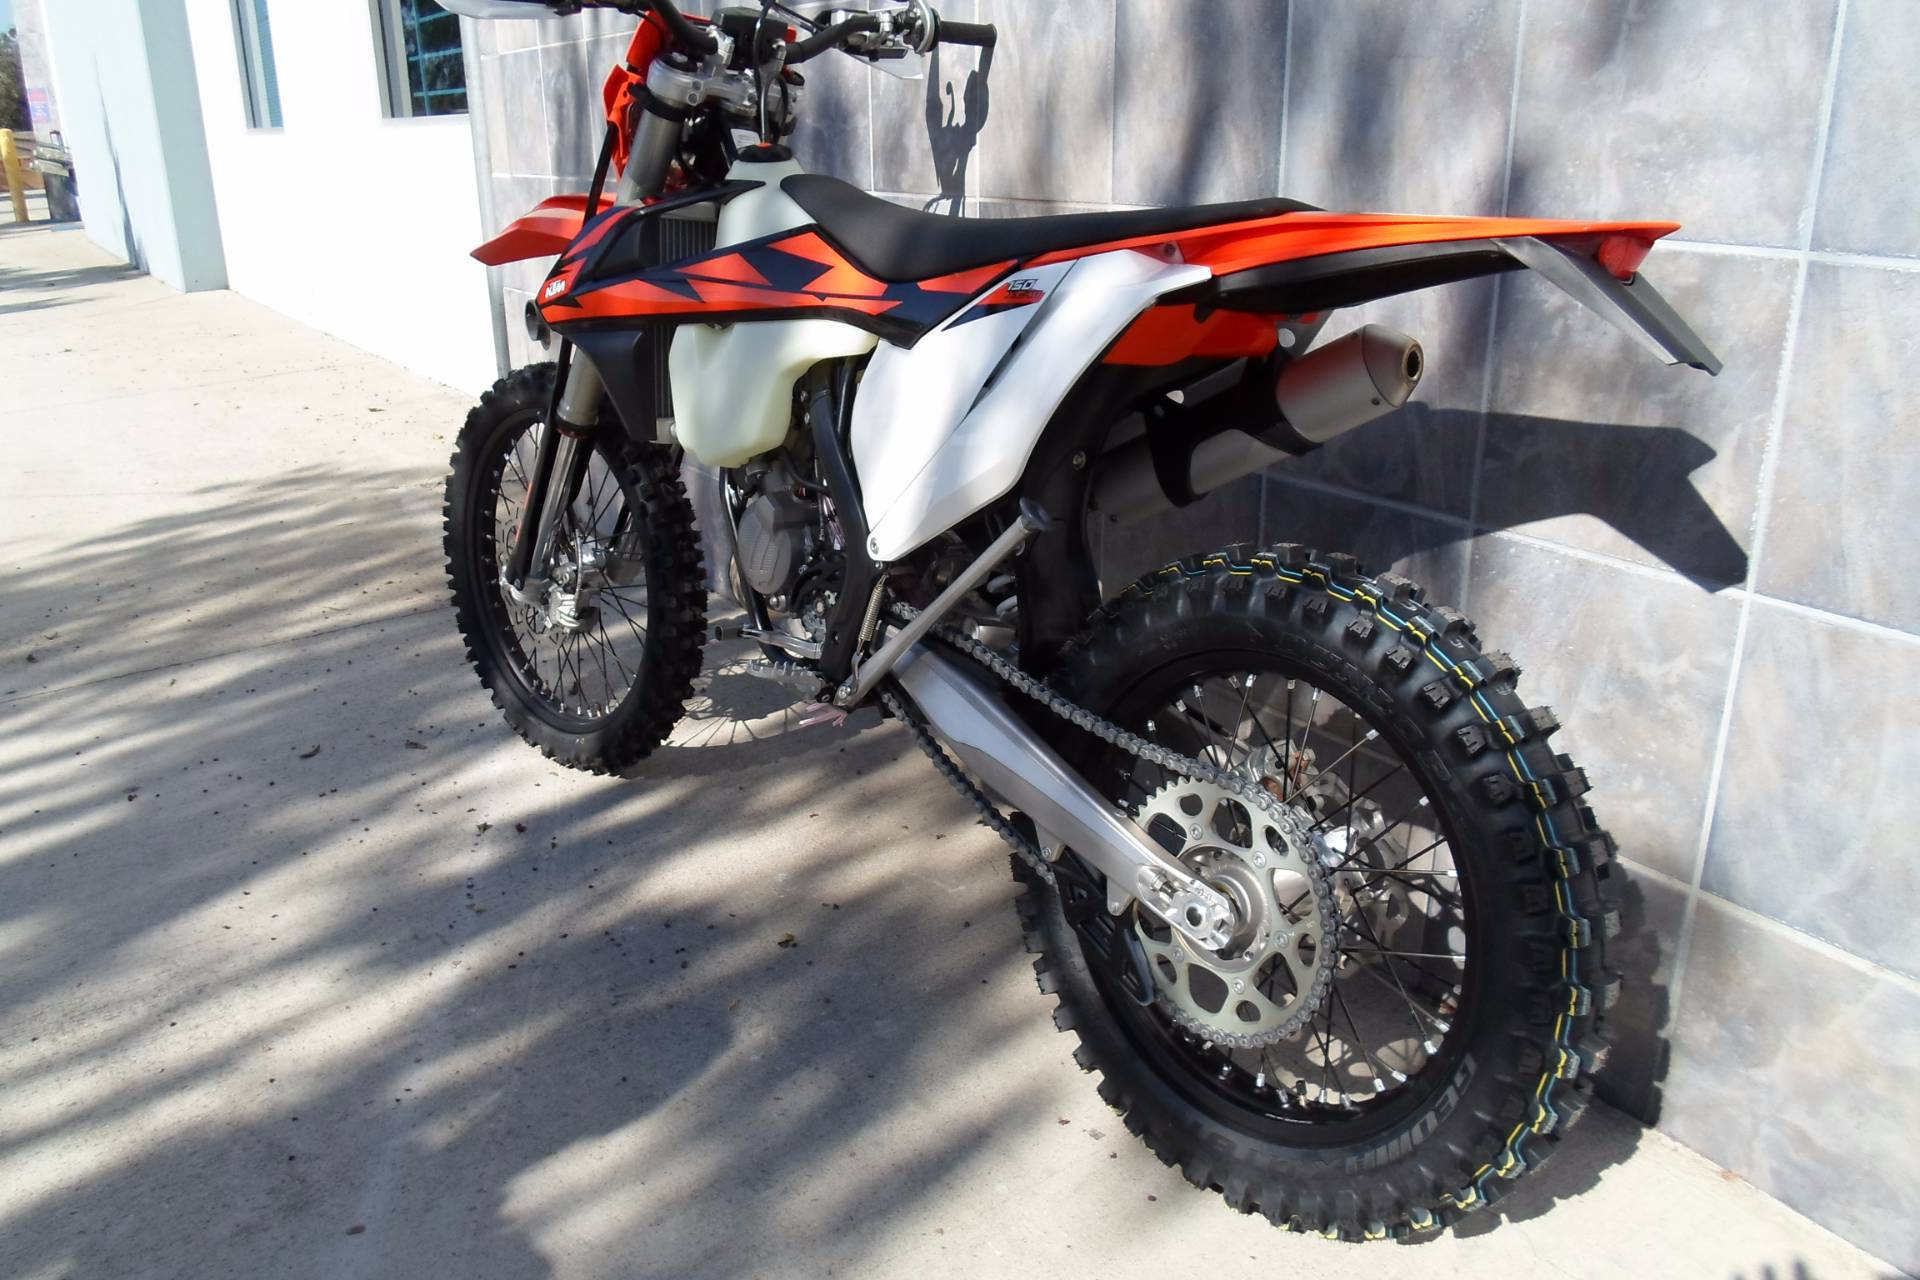 2018 ktm 150 xc w. simple ktm 2018 ktm 150 xcw in san marcos california and ktm xc w